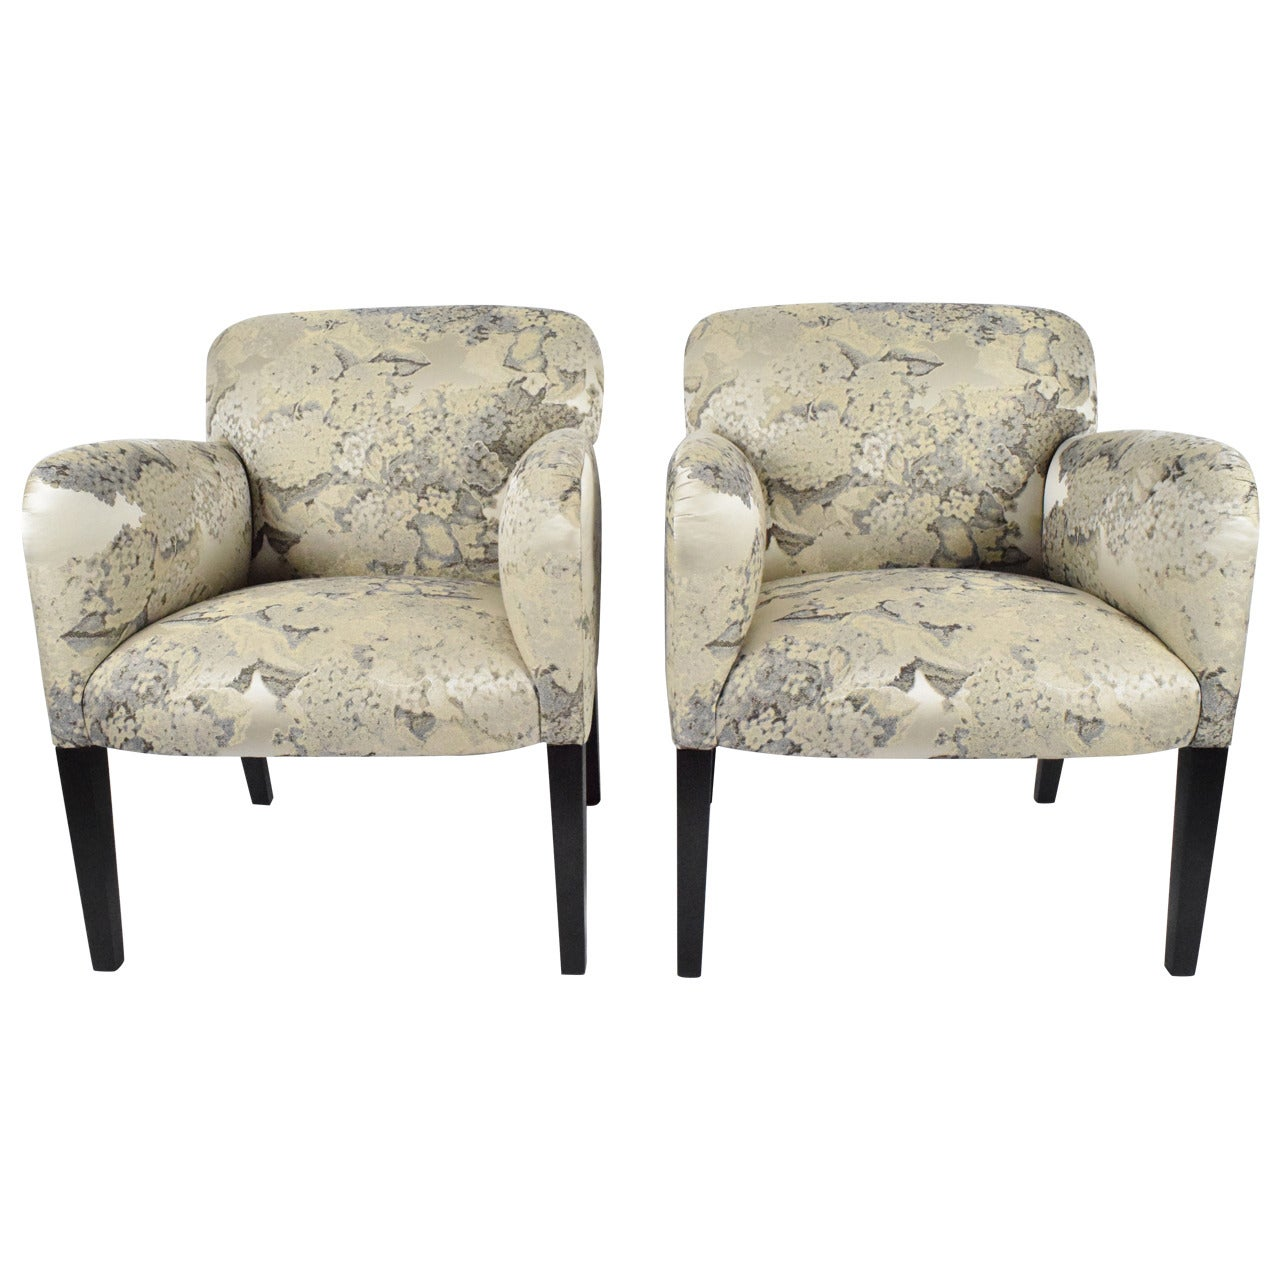 """Donghia """"Norway"""" Club Chairs in Donghia """"Edith"""" Fabric"""